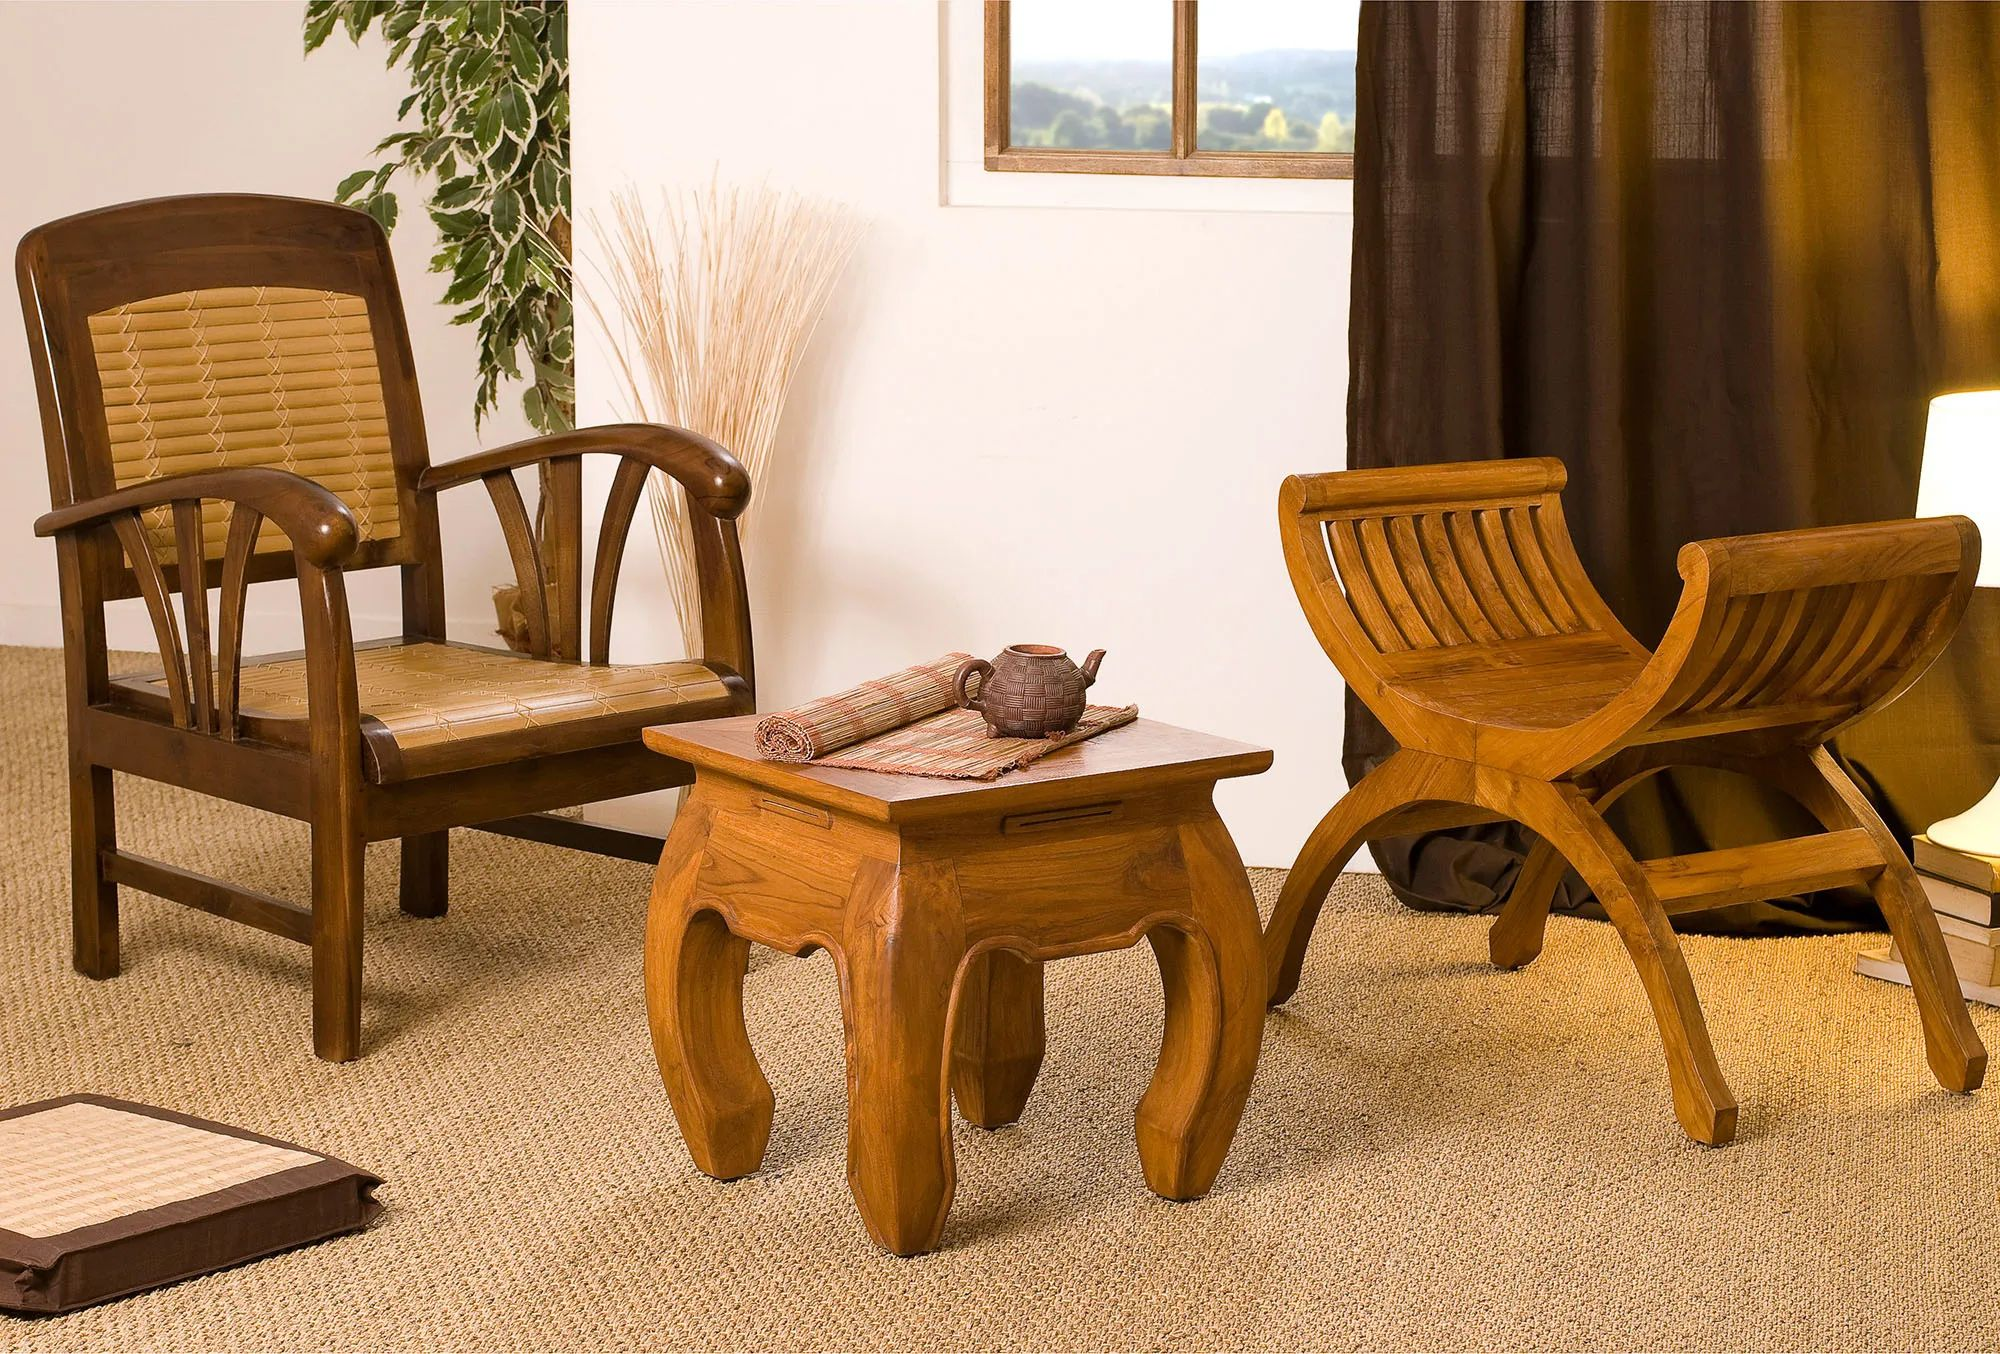 Traditional Javanese chair and opium small side table